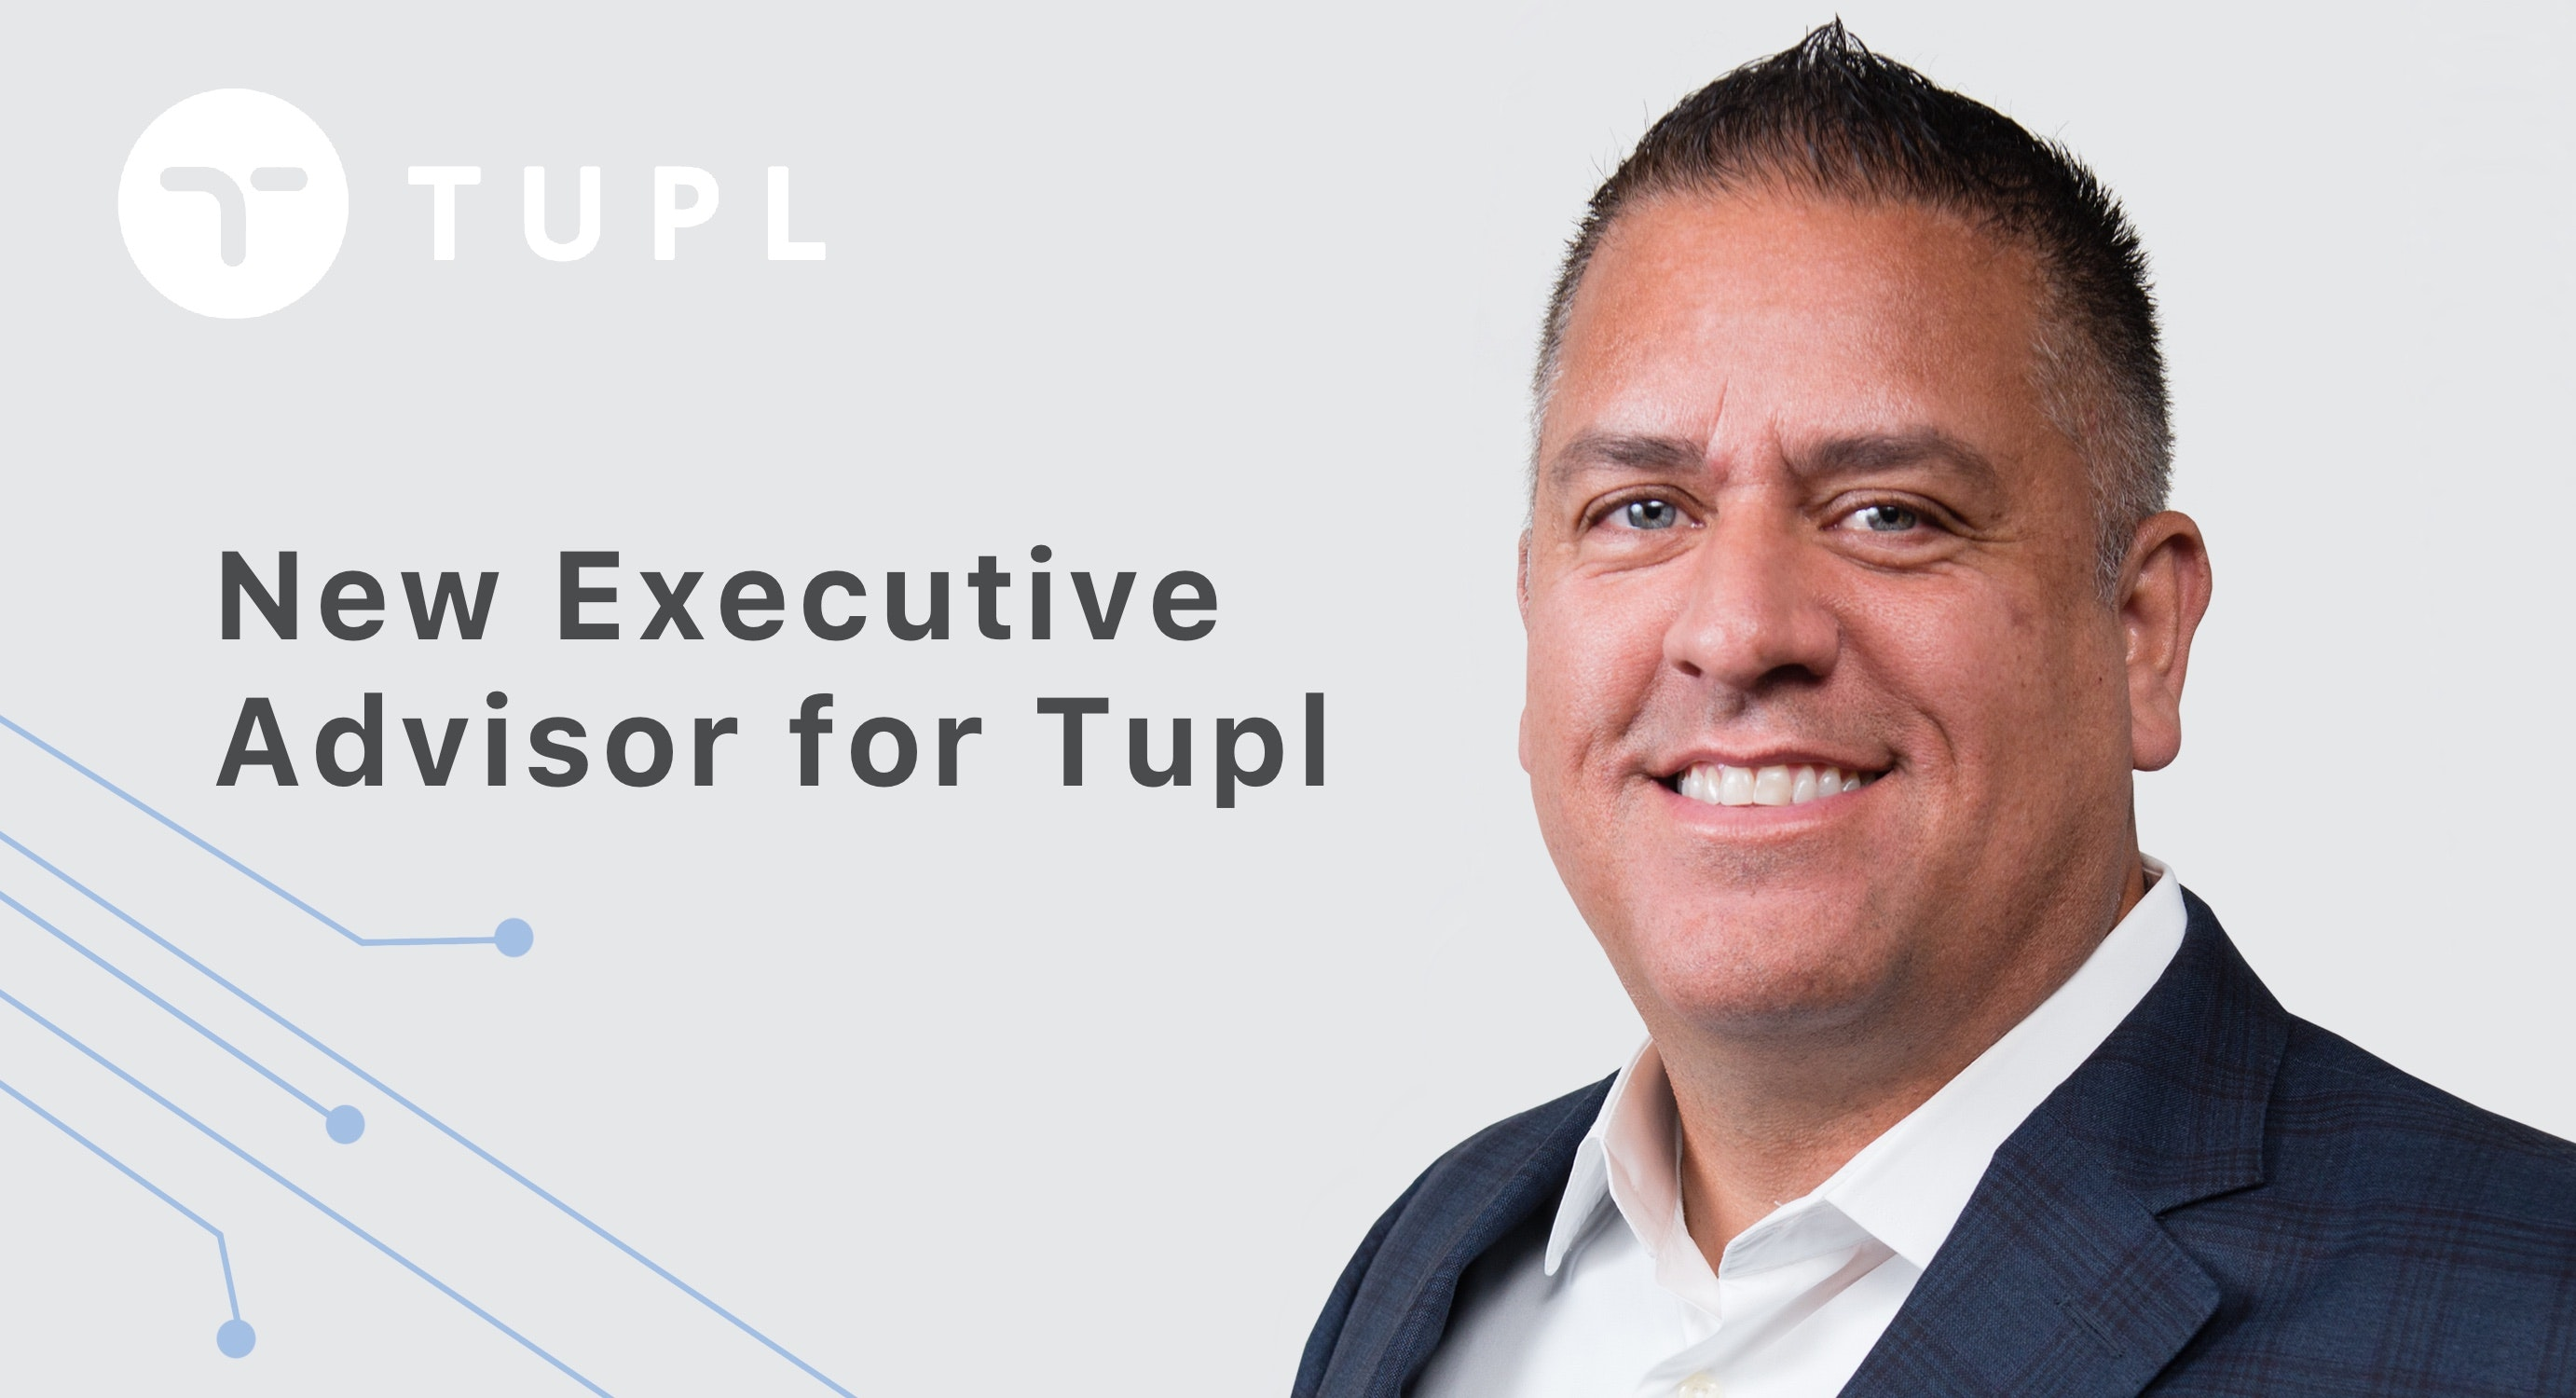 Andrew G. Chavez appointed as Executive Advisor for Tupl